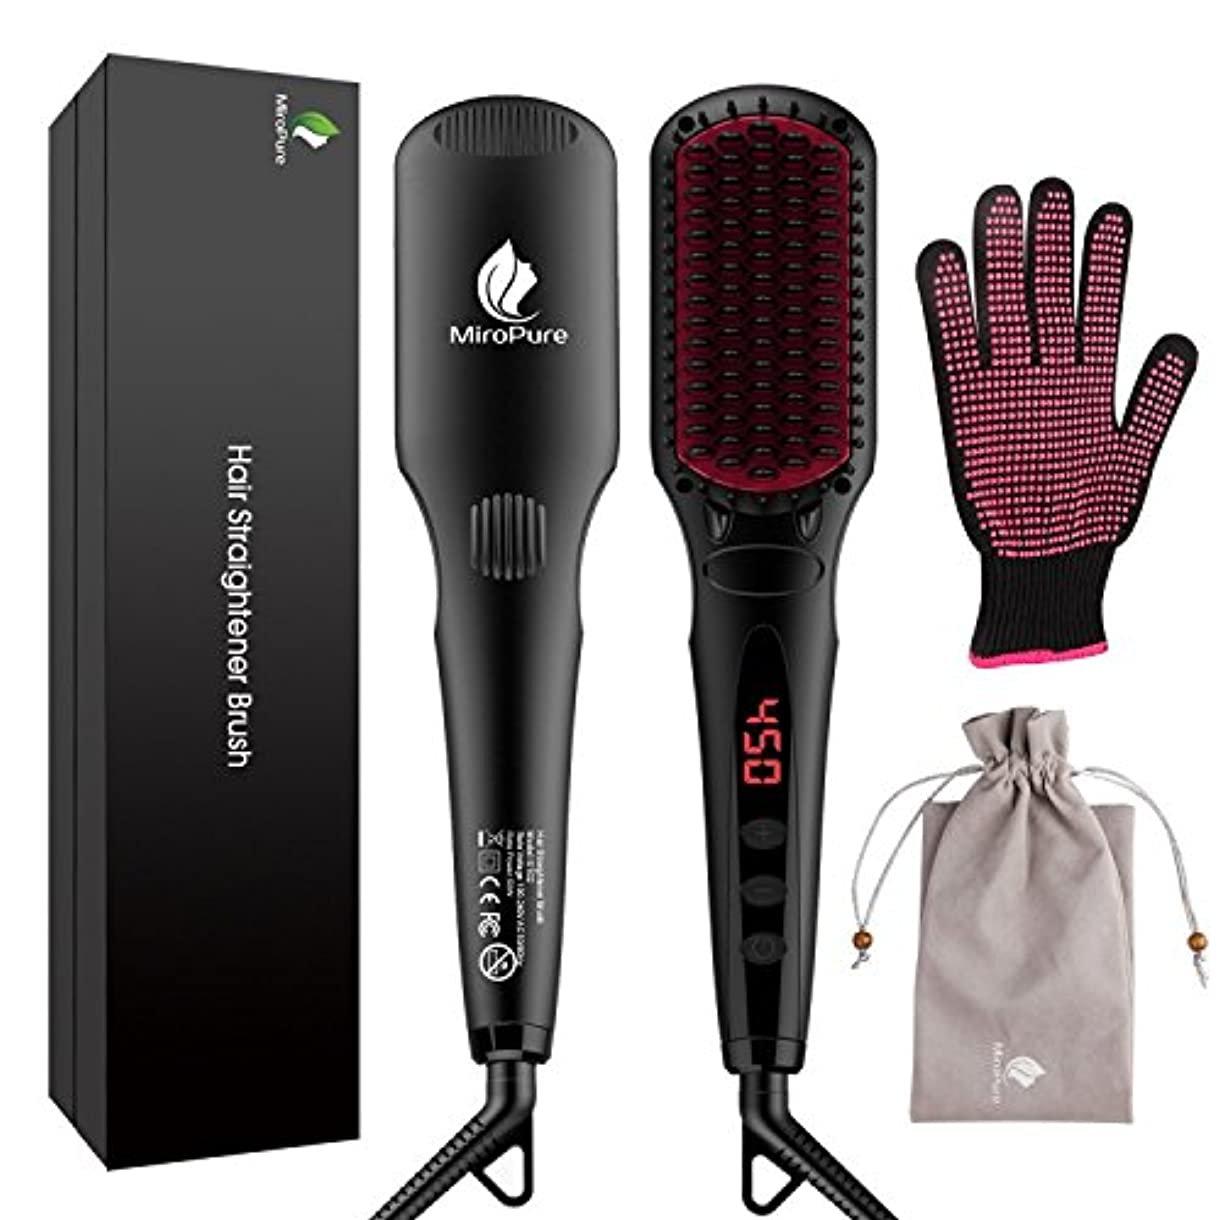 応用令状しょっぱいMiroPure 2 in 1 Ionic Hair Straightener Brush ヘアストレートヘアブラシ with Heat Resistant Glove and Temperature Lock Function...